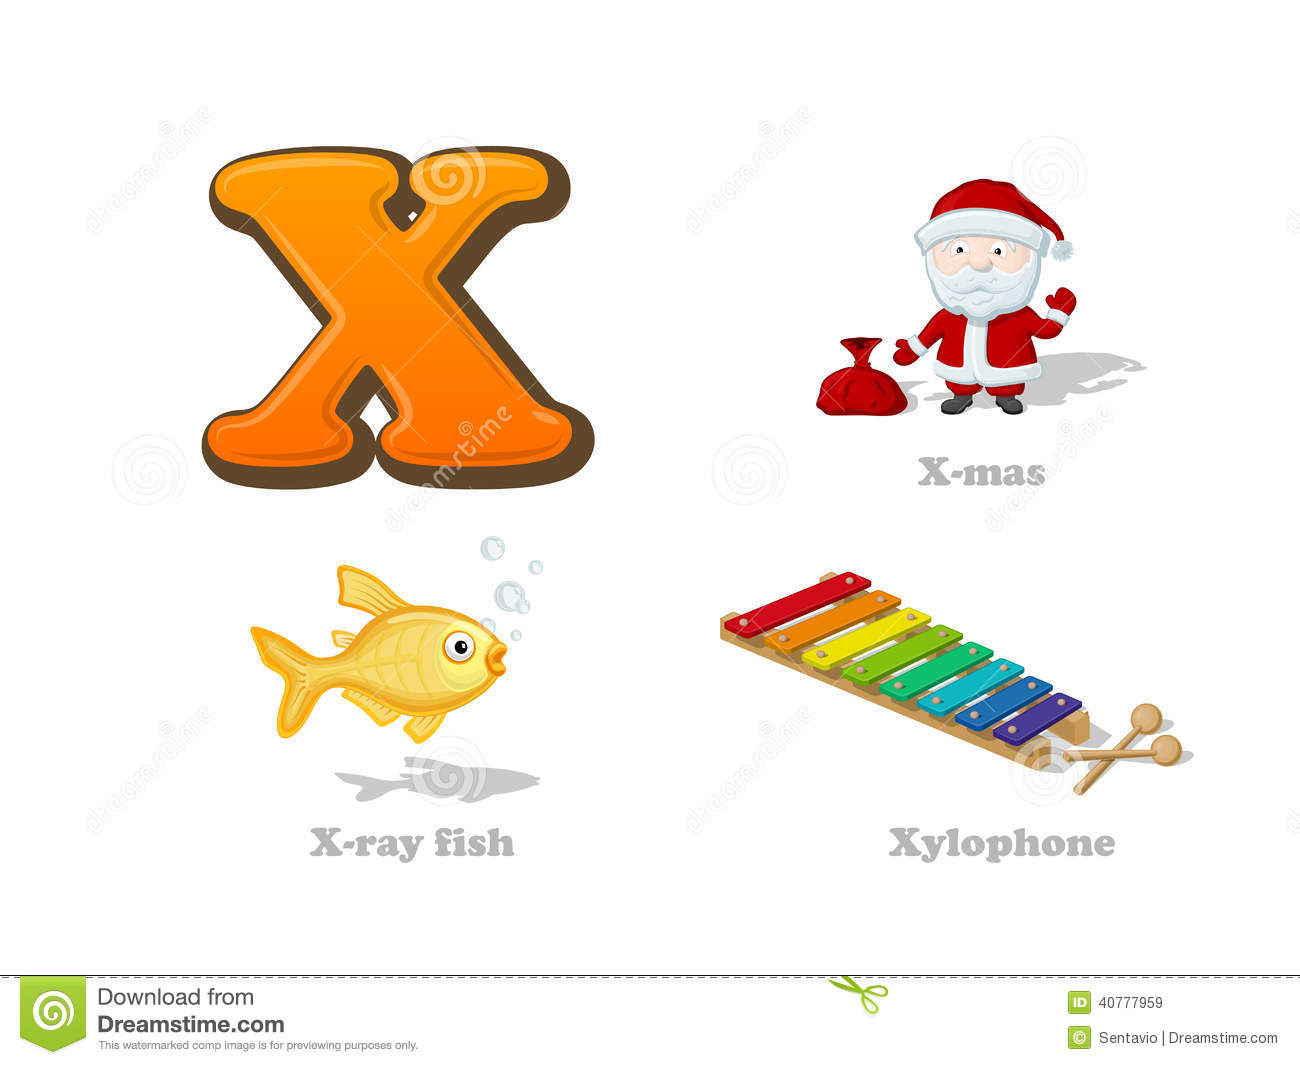 Abc Letter X Funny Kid Icons Set X Mas X Ray Fish